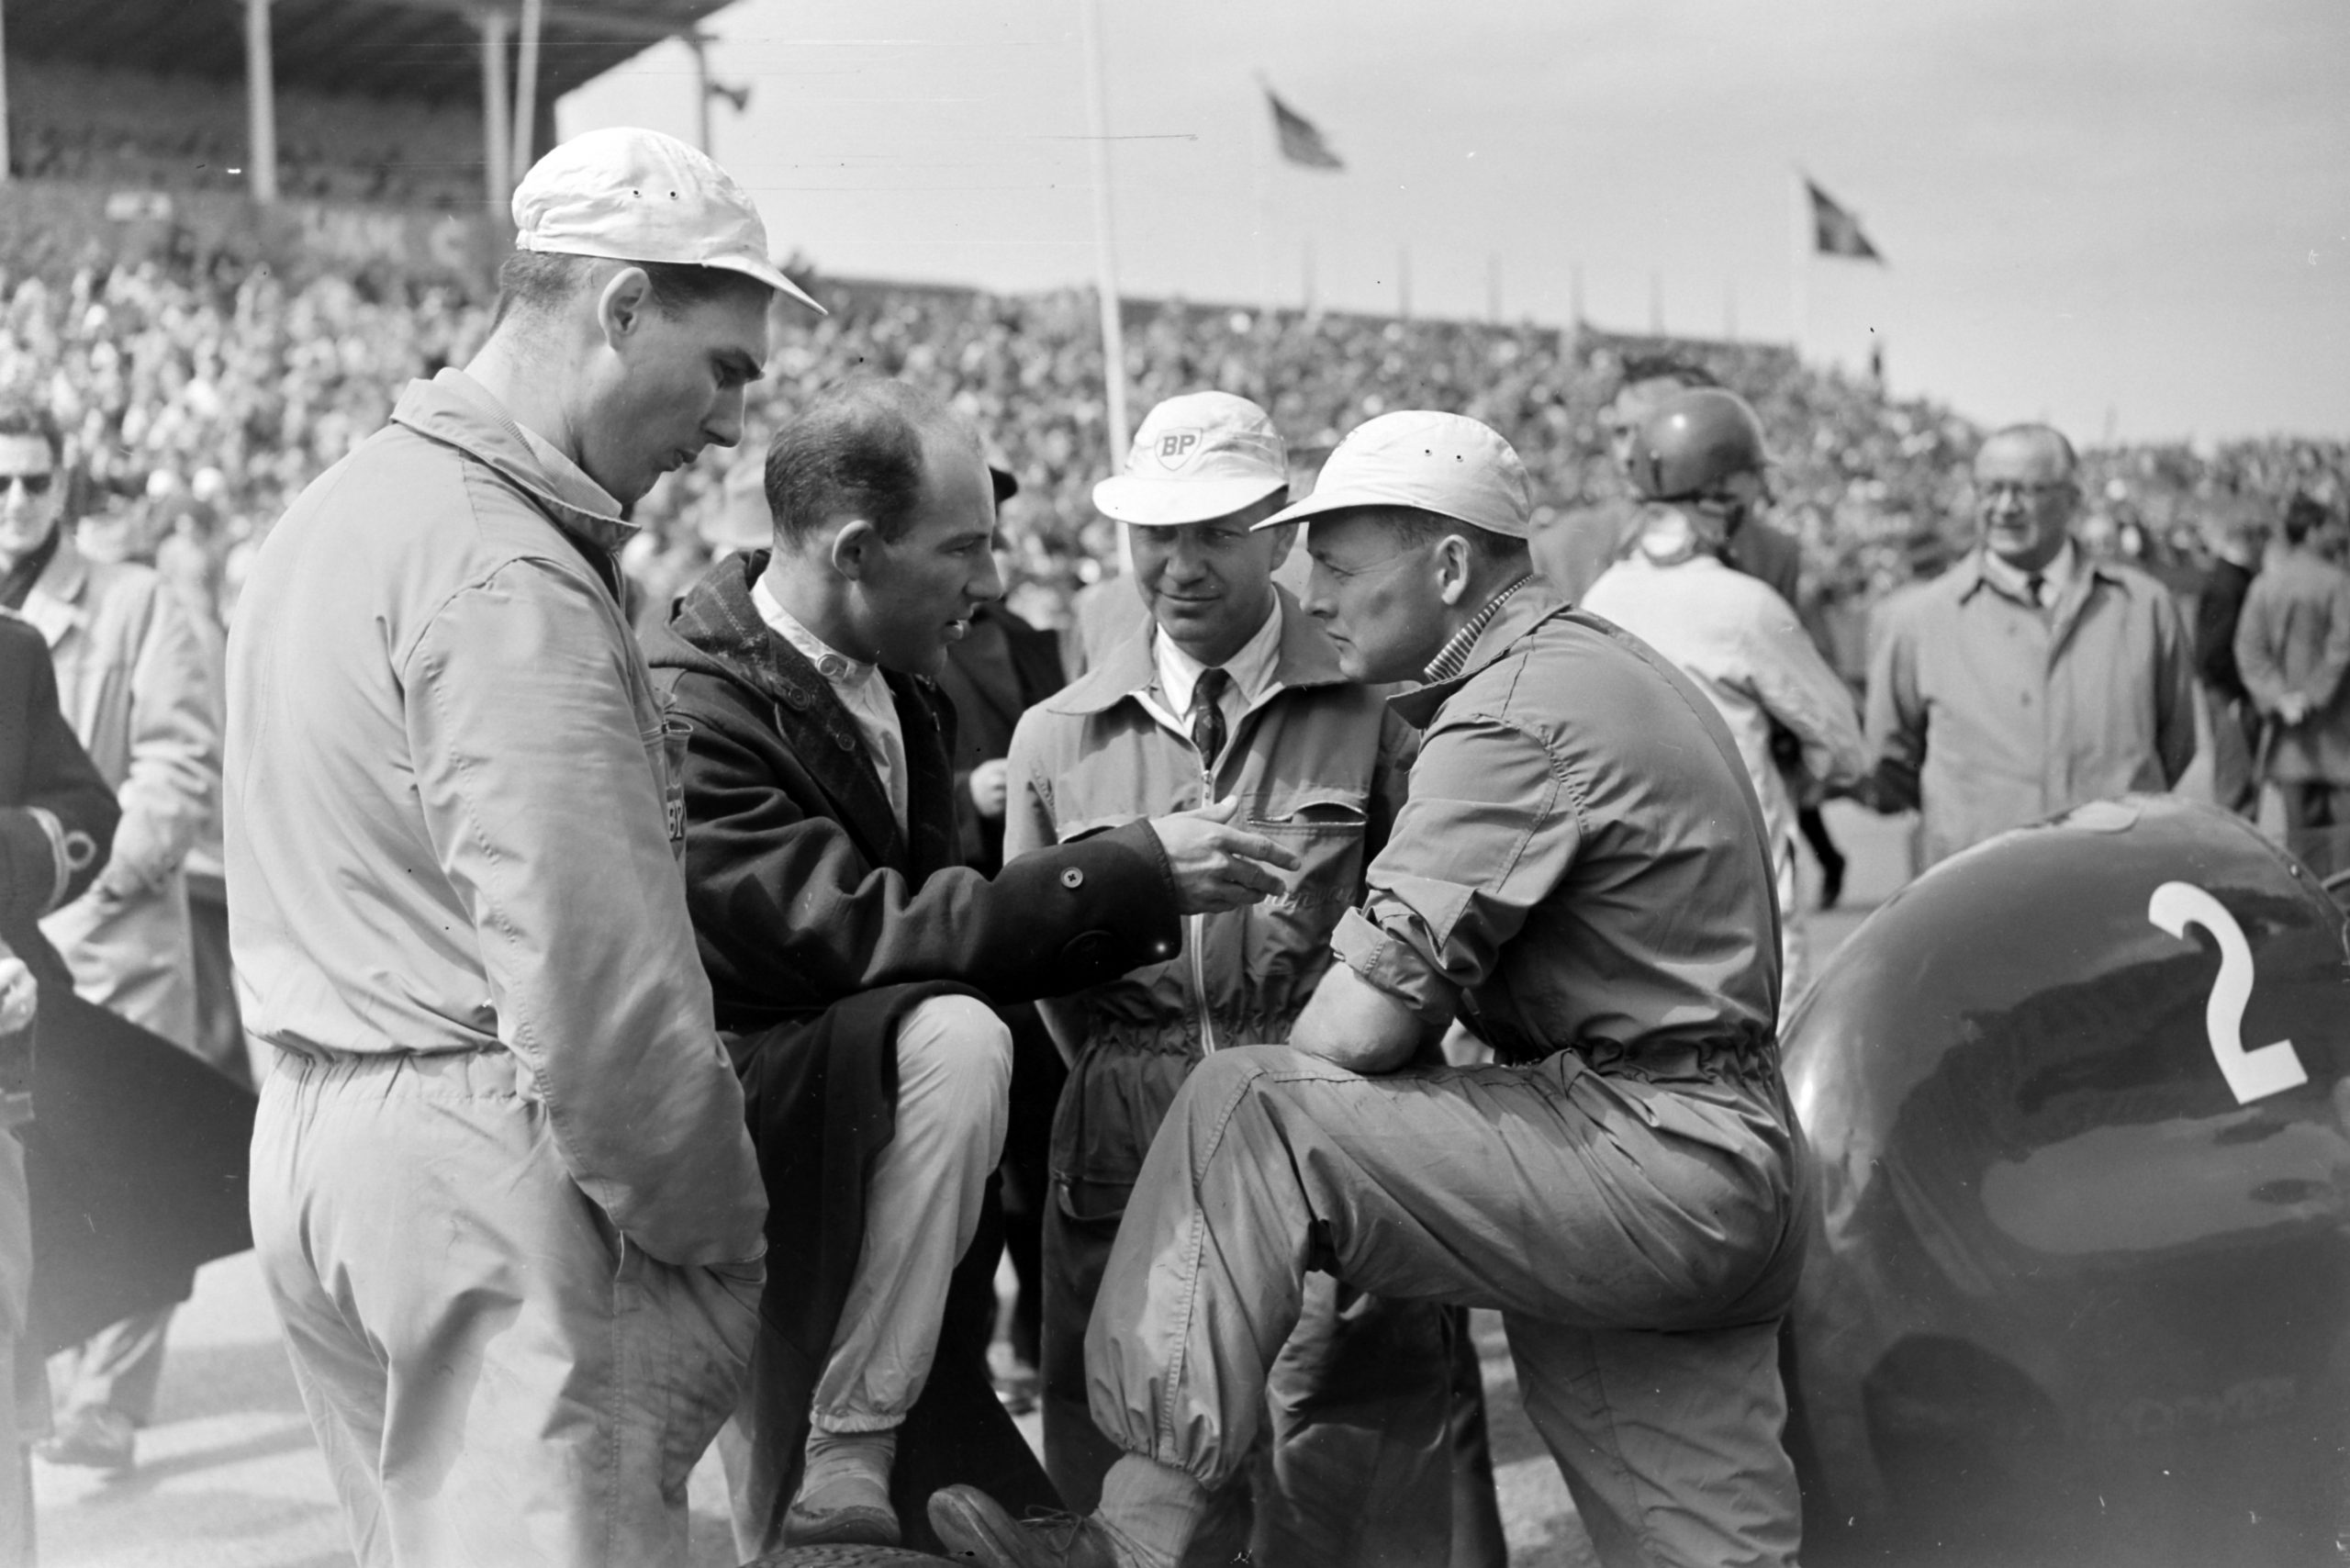 Stirling Moss speaks with mechanics before the race